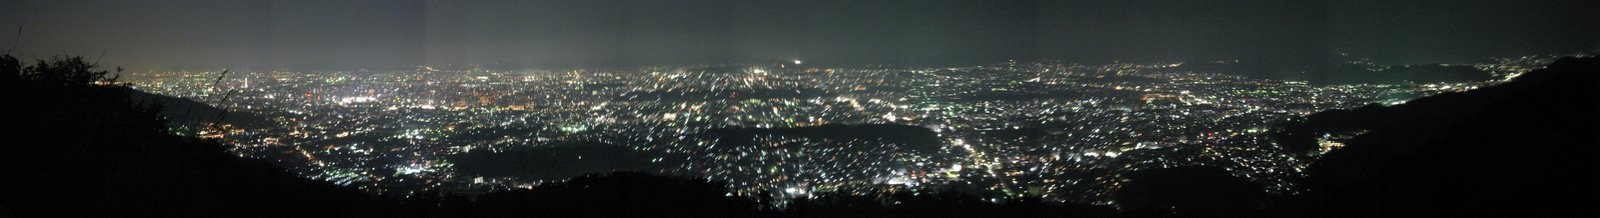 Kyoto by night - Panorama from Daimonji